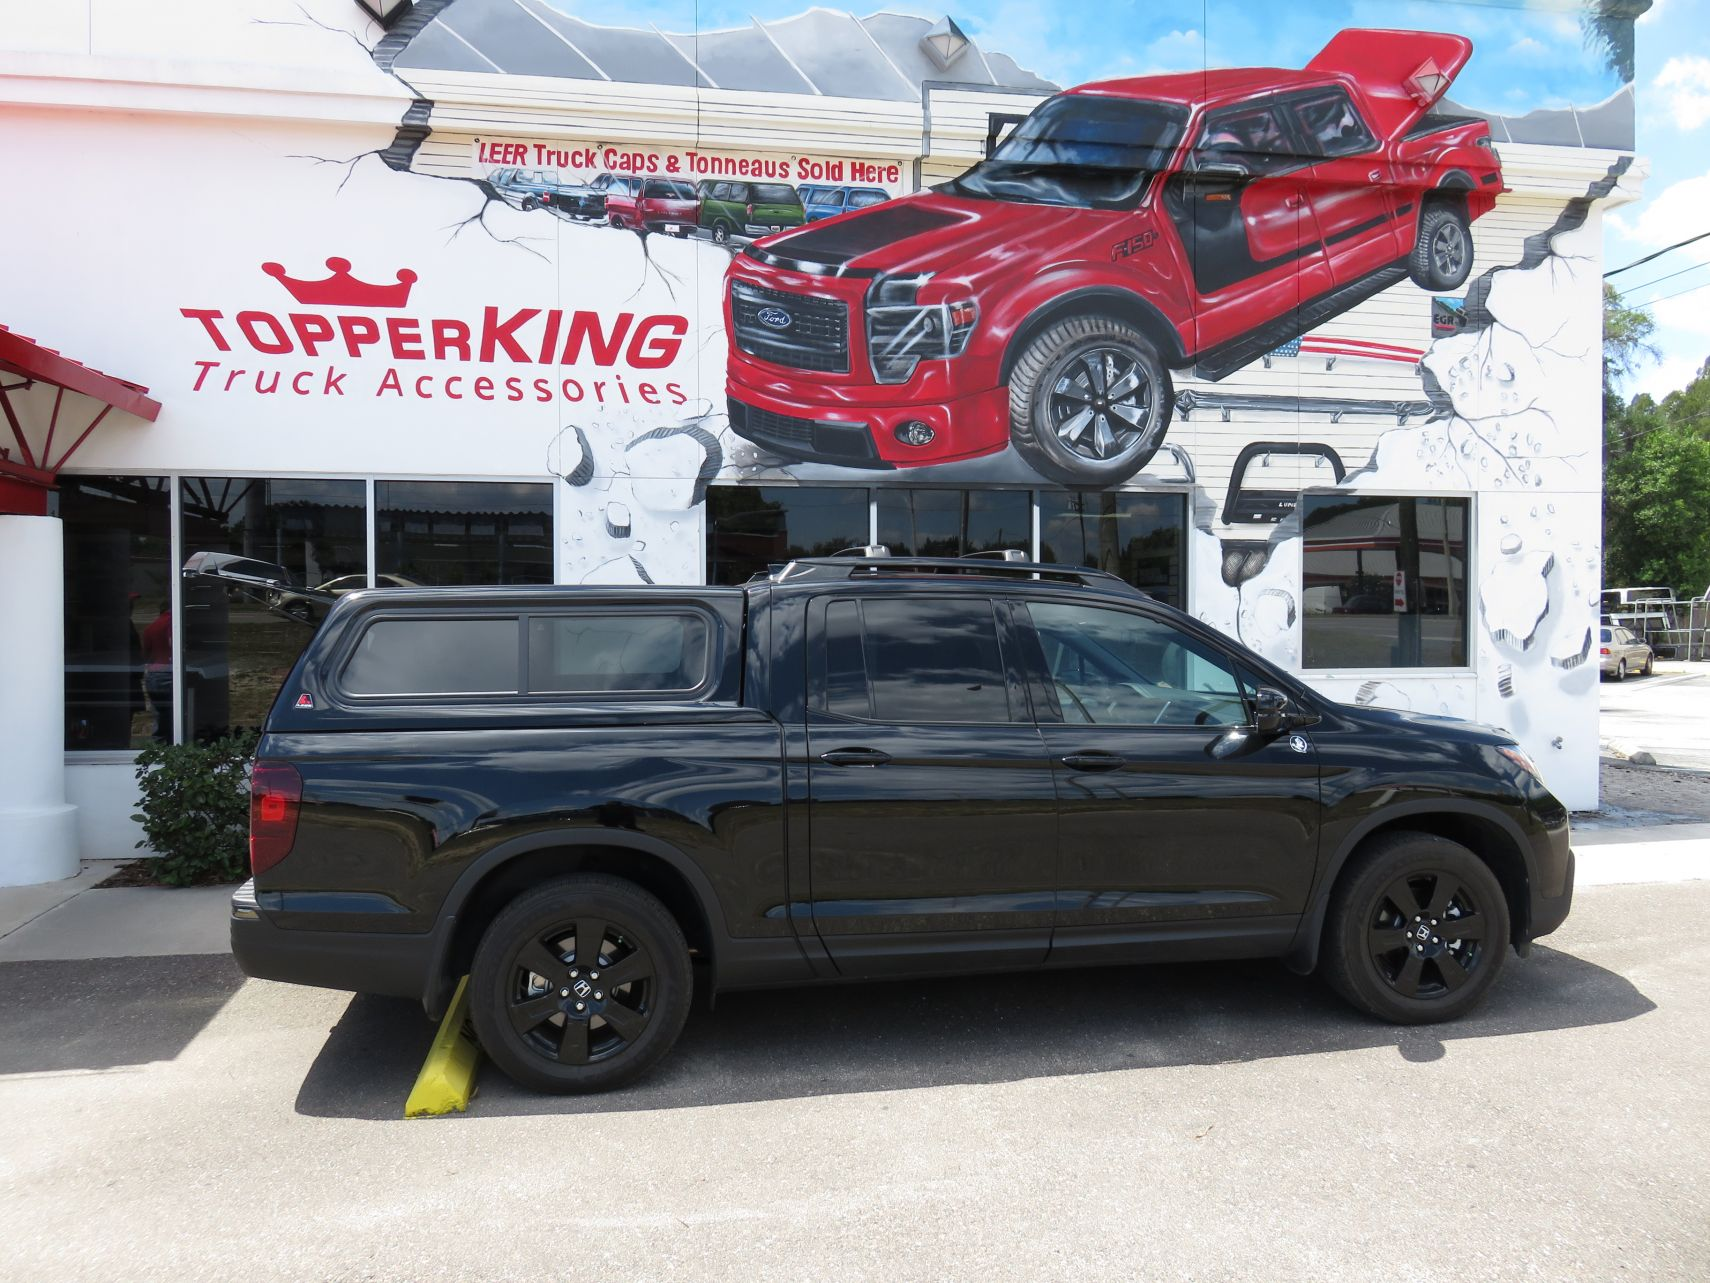 2017 Honda Ridgeline with LEER 100XR fiberglass topper, Roof Racks, Hitch, Tint by TopperKING in Brandon 813-689-2449 or Clearwater 727-530-9066. Call now!